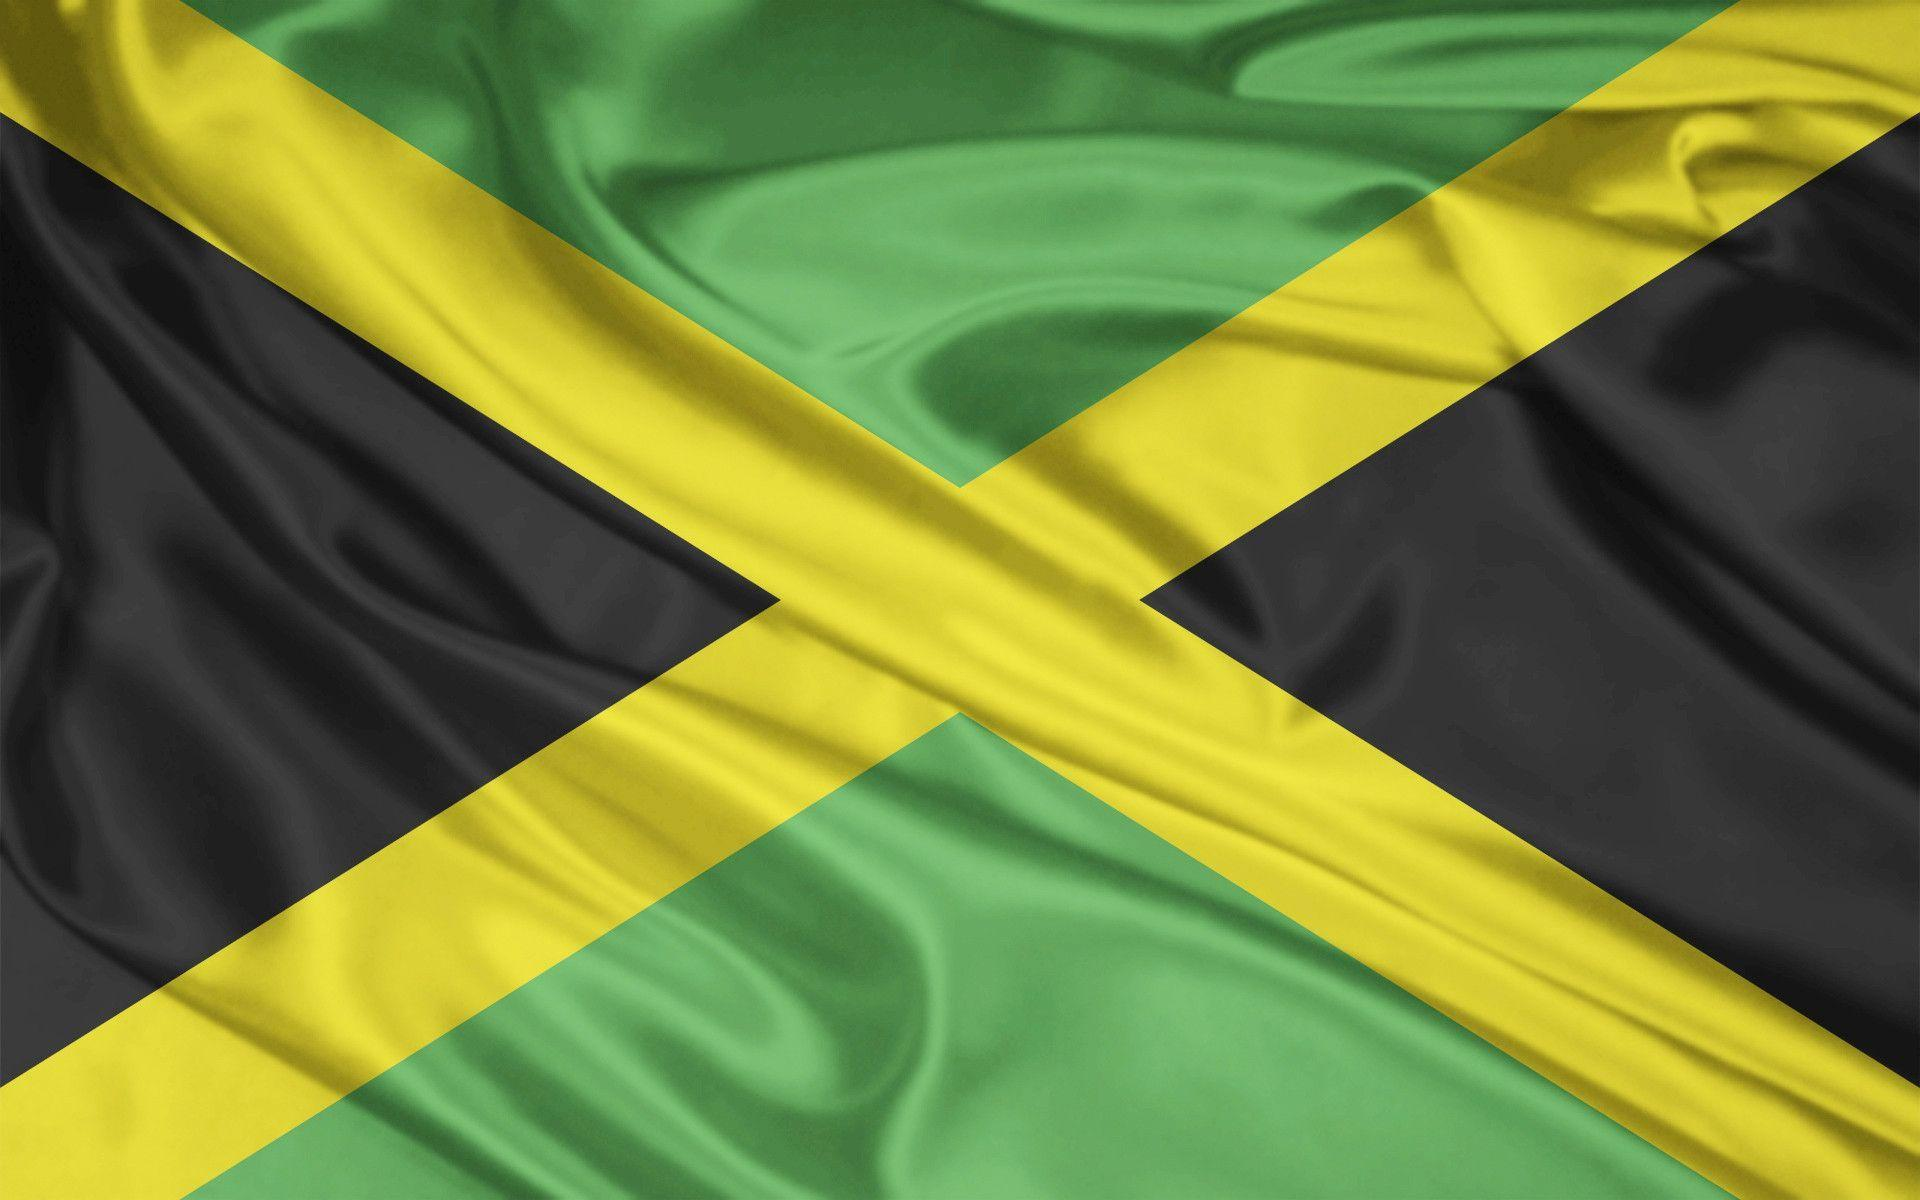 Pin 640x960 Jamaican Flag Iphone 4 Wallpapers